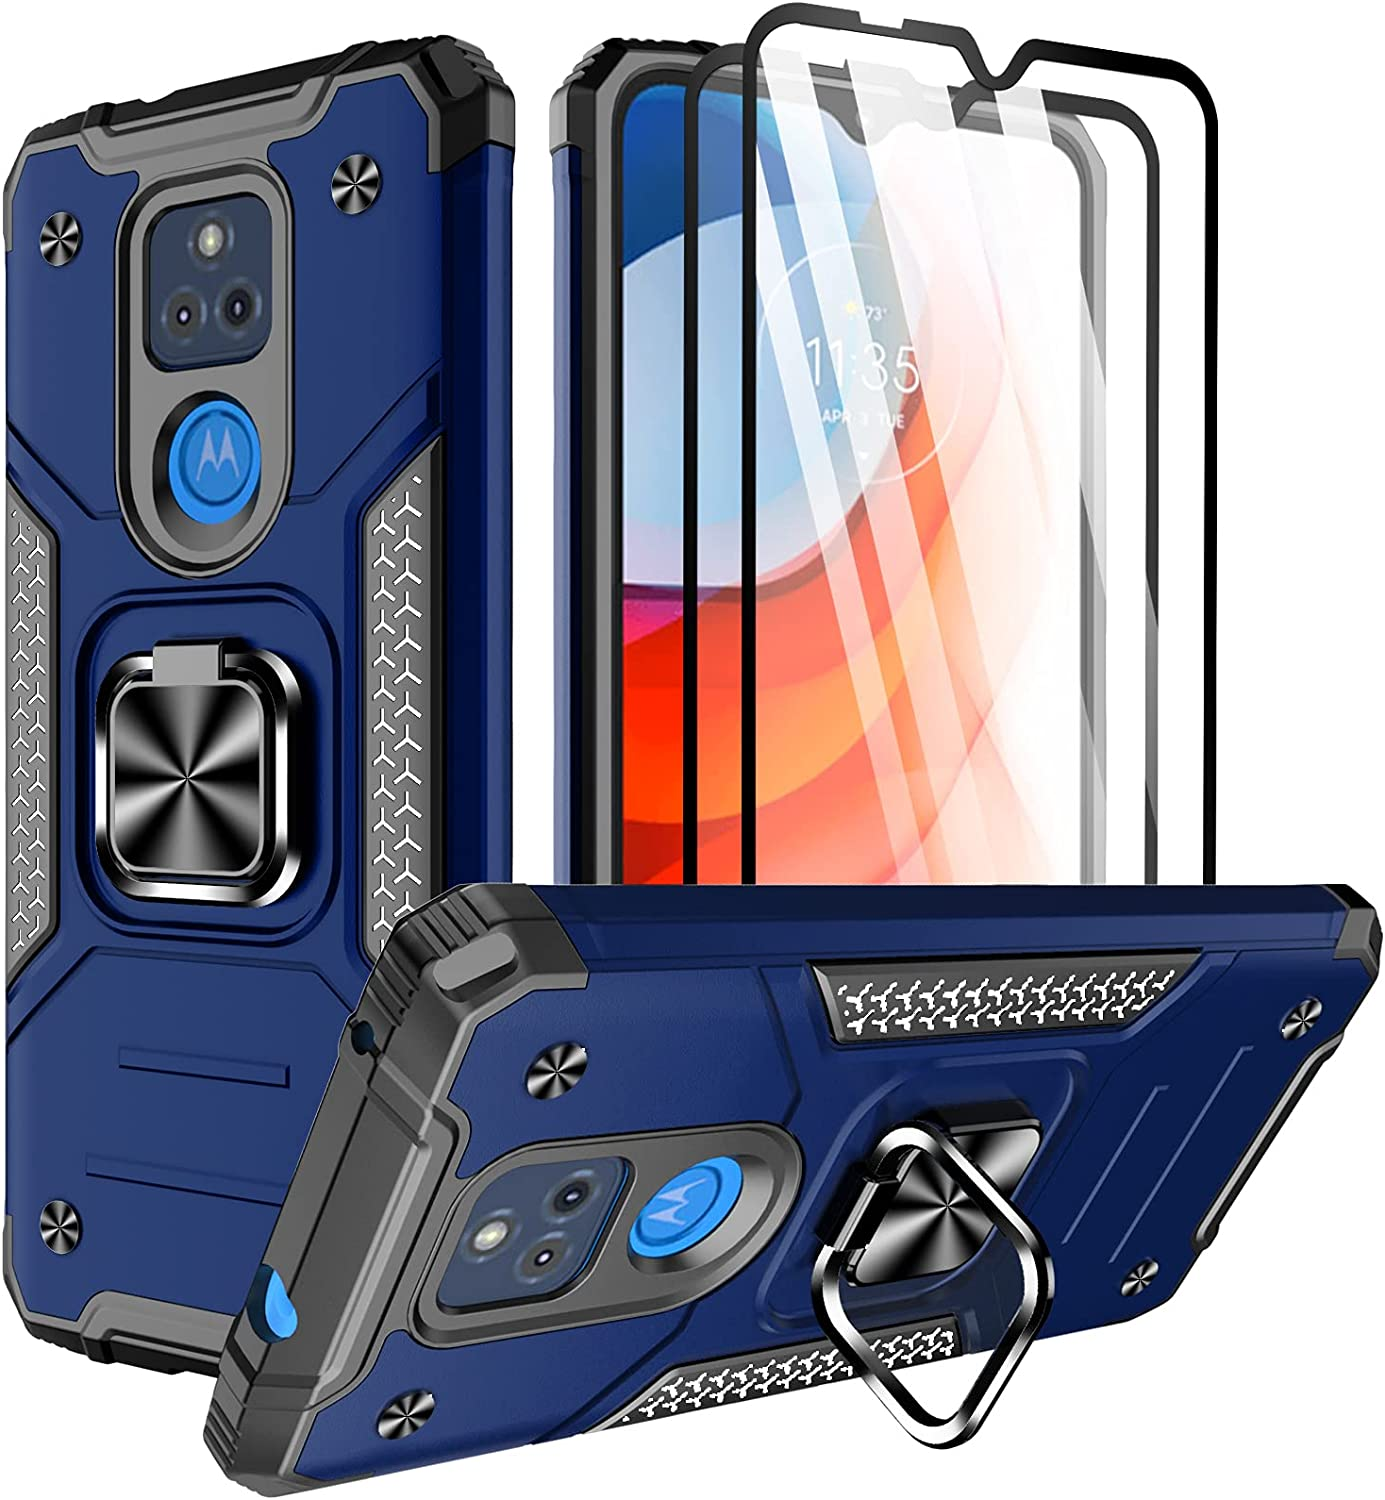 ChacXXLI for Moto G Play 2021 Case, Moto G Play Case with [2 Pack] Tempered Glass Screen Protector, Rotating Ring Kickstand Shockproof Impact Resistant Phone Case for Motorola G Play 2021 - Blue